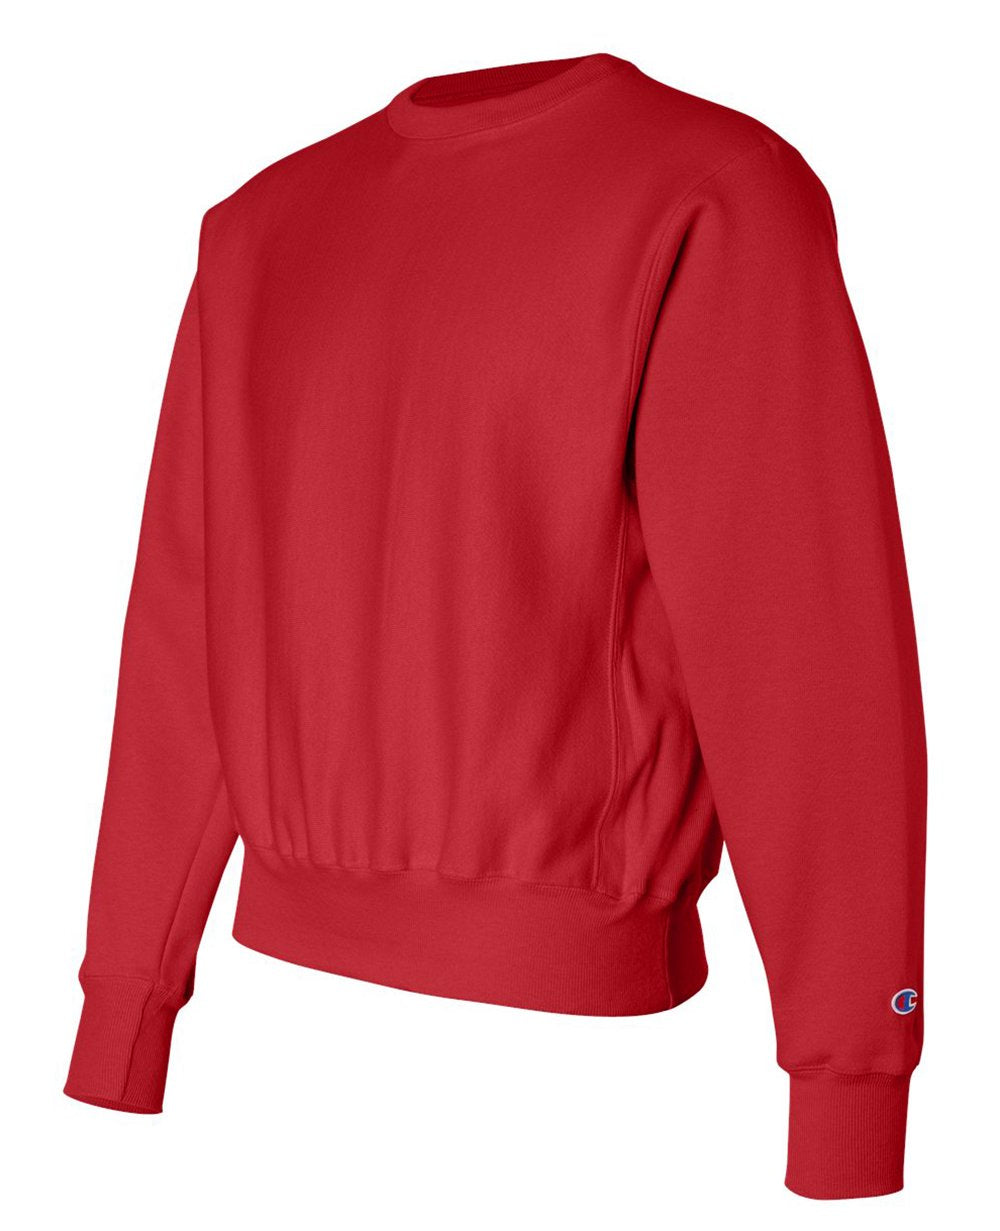 Sleeve Logo Sweater in Red